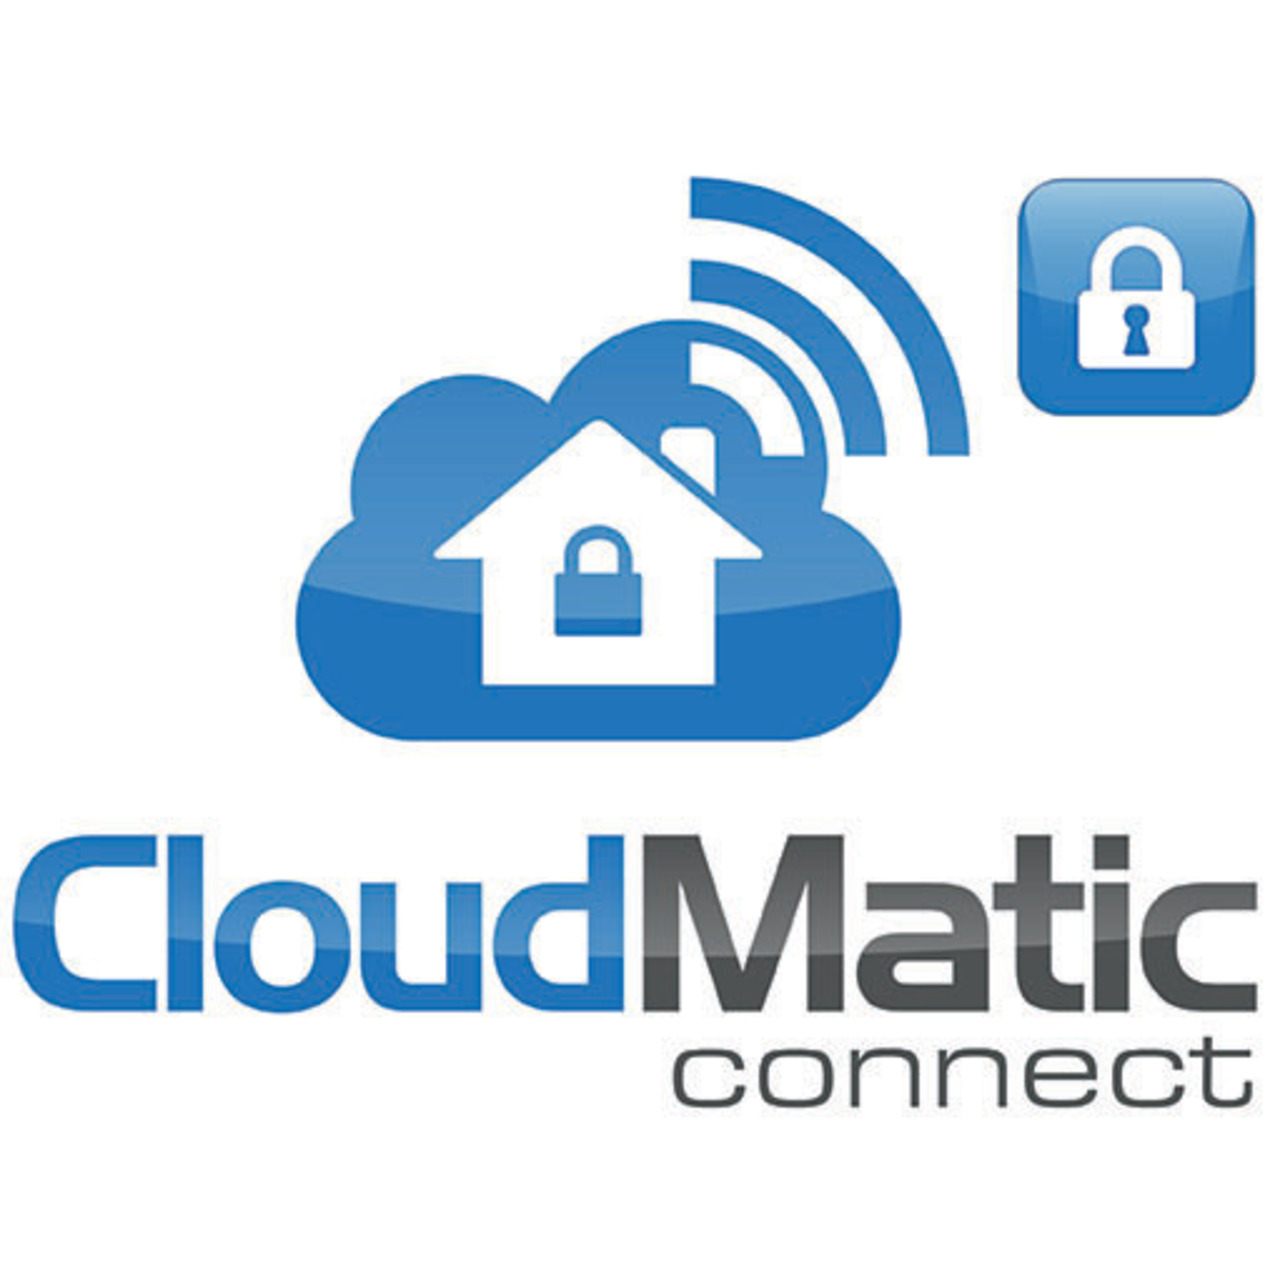 CloudMatic connect- 12 Monate Fernzugang für Homematic Smart Home - Hausautomation